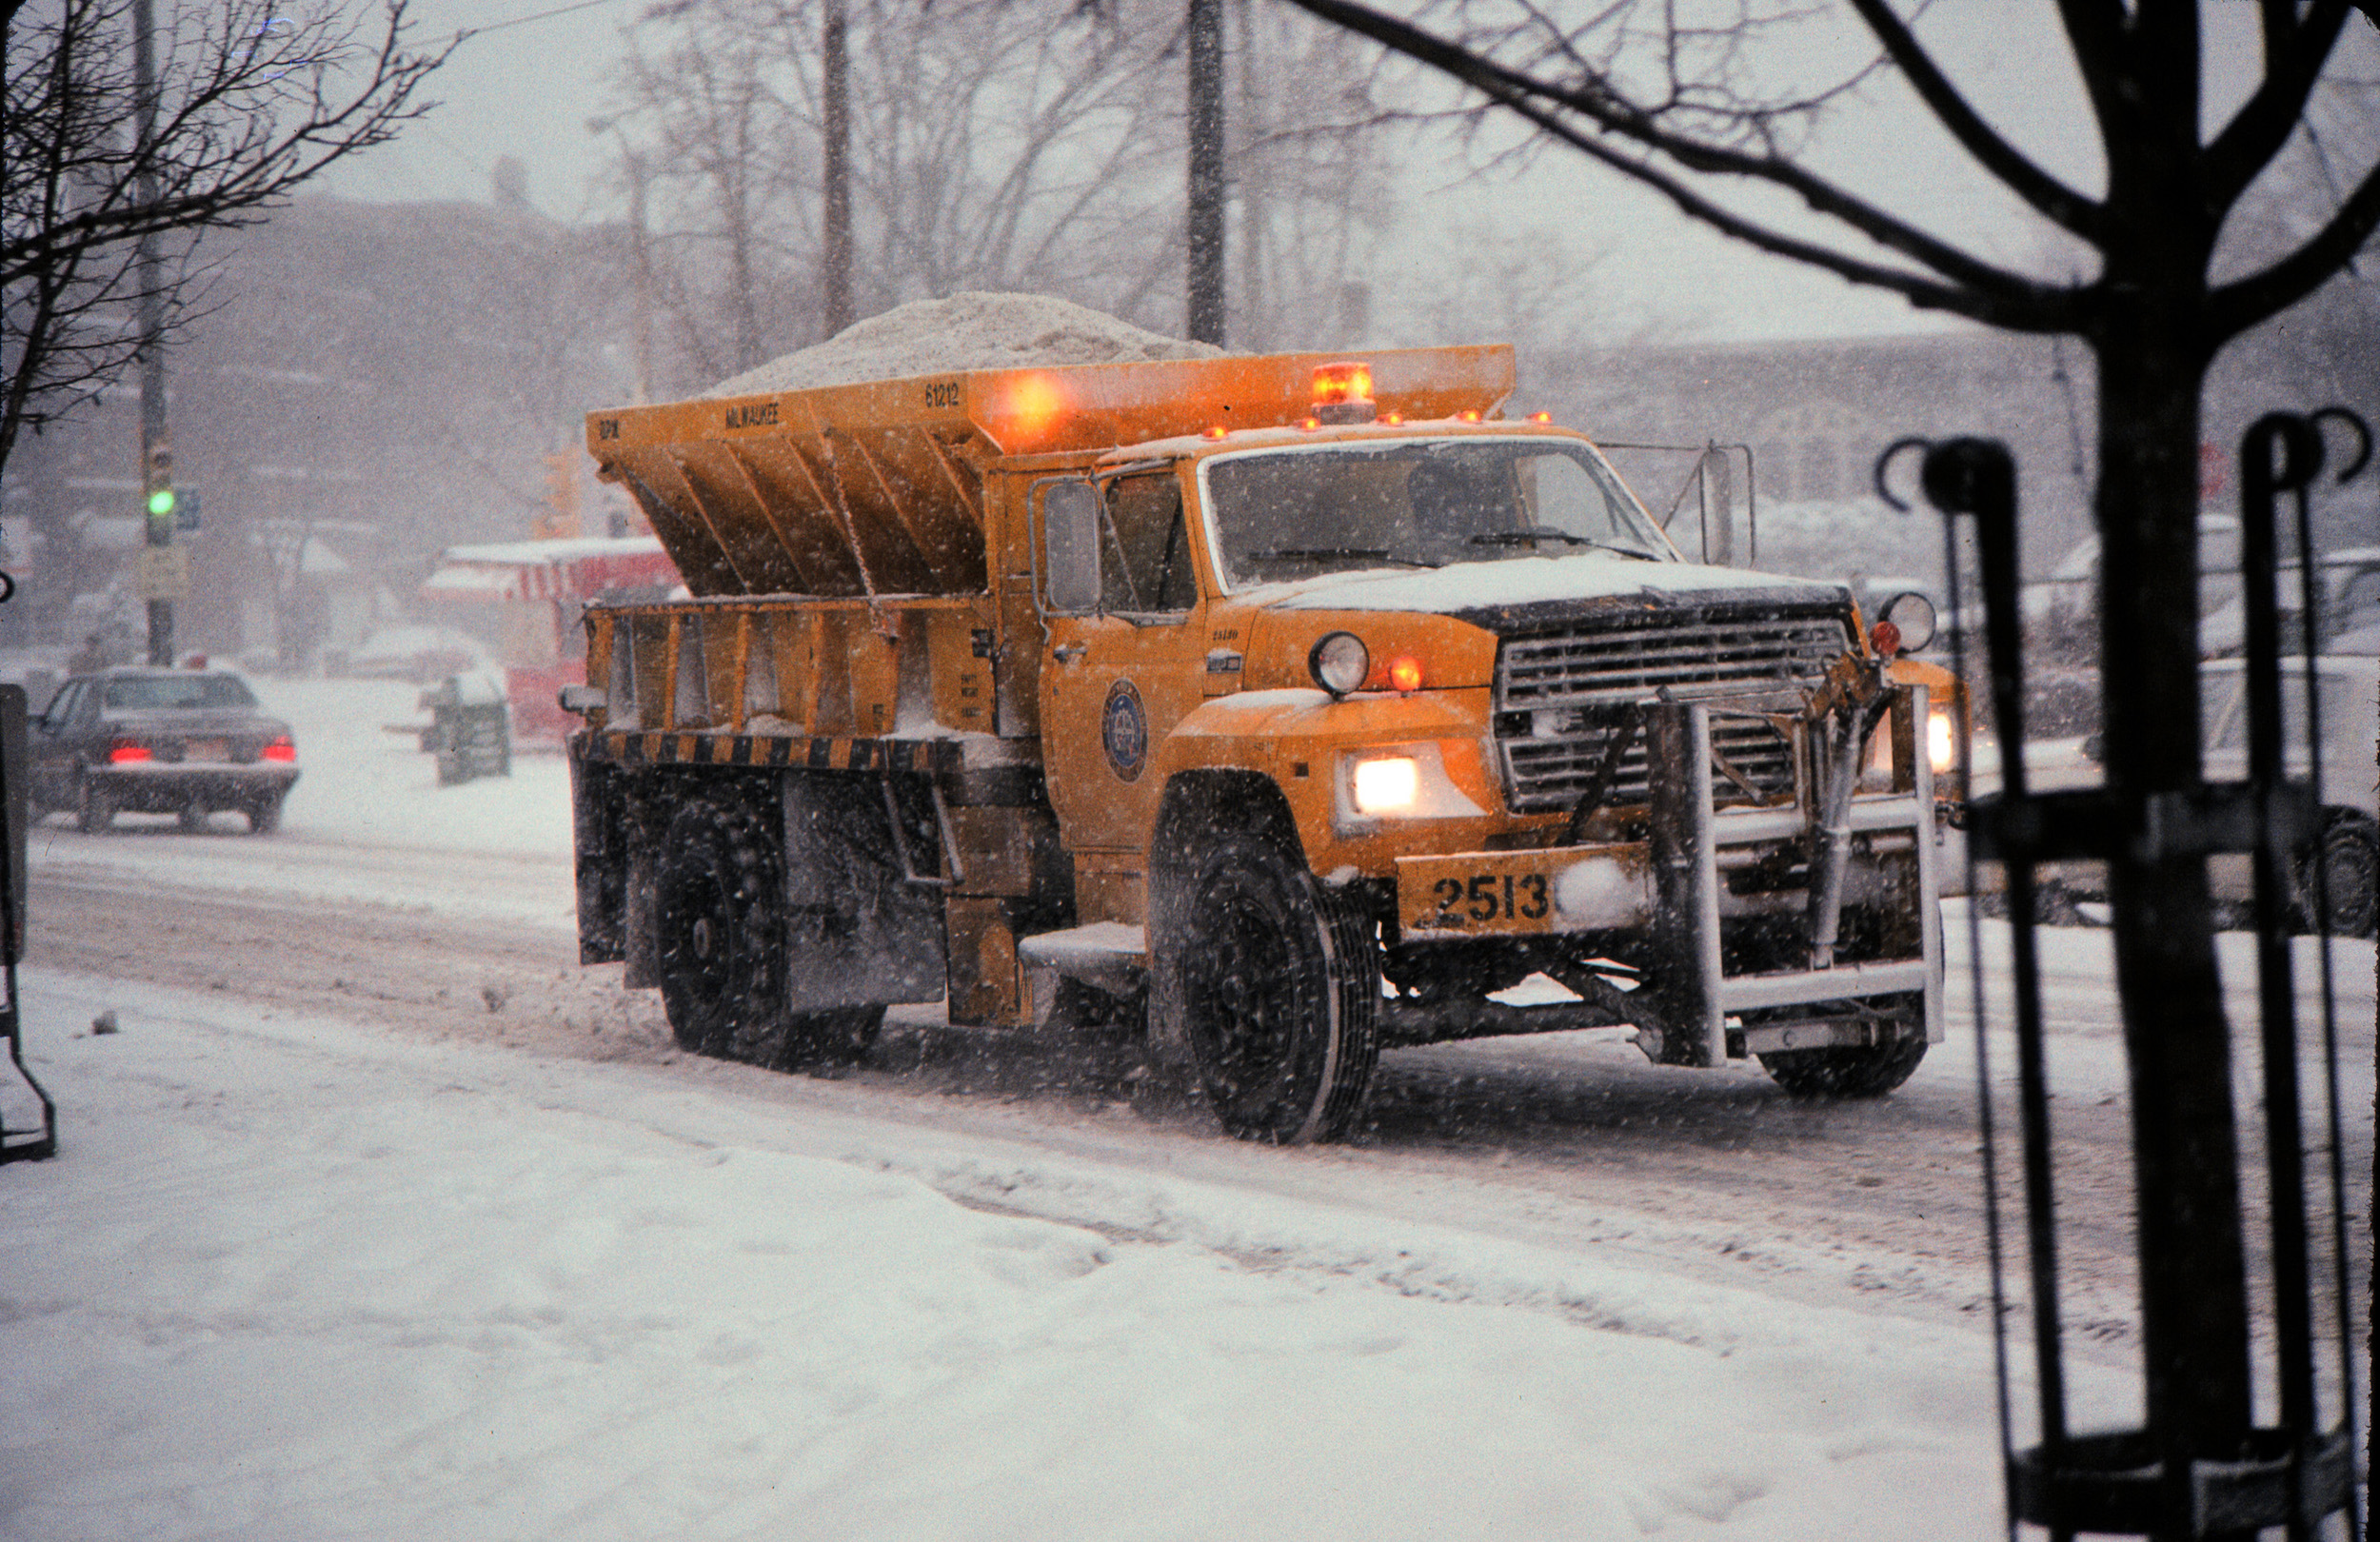 <table class=&quot;lightbox&quot;><tr><td colspan=2 class=&quot;lightbox-title&quot;>Public Works Salt Truck</td></tr><tr><td colspan=2 class=&quot;lightbox-caption&quot;>A Milwaukee public works truck lays down salt on Downer Avenue in 1988.  </td></tr><tr><td colspan=2 class=&quot;lightbox-spacer&quot;></td></tr><tr class=&quot;lightbox-detail&quot;><td class=&quot;cell-title&quot;>Source: </td><td class=&quot;cell-value&quot;>Photograph by Alan Magayne-Roshak. Copyright 2014. Reprinted with permission.</td></tr><tr class=&quot;filler-row&quot;><td colspan=2>&nbsp;</td></tr></table>